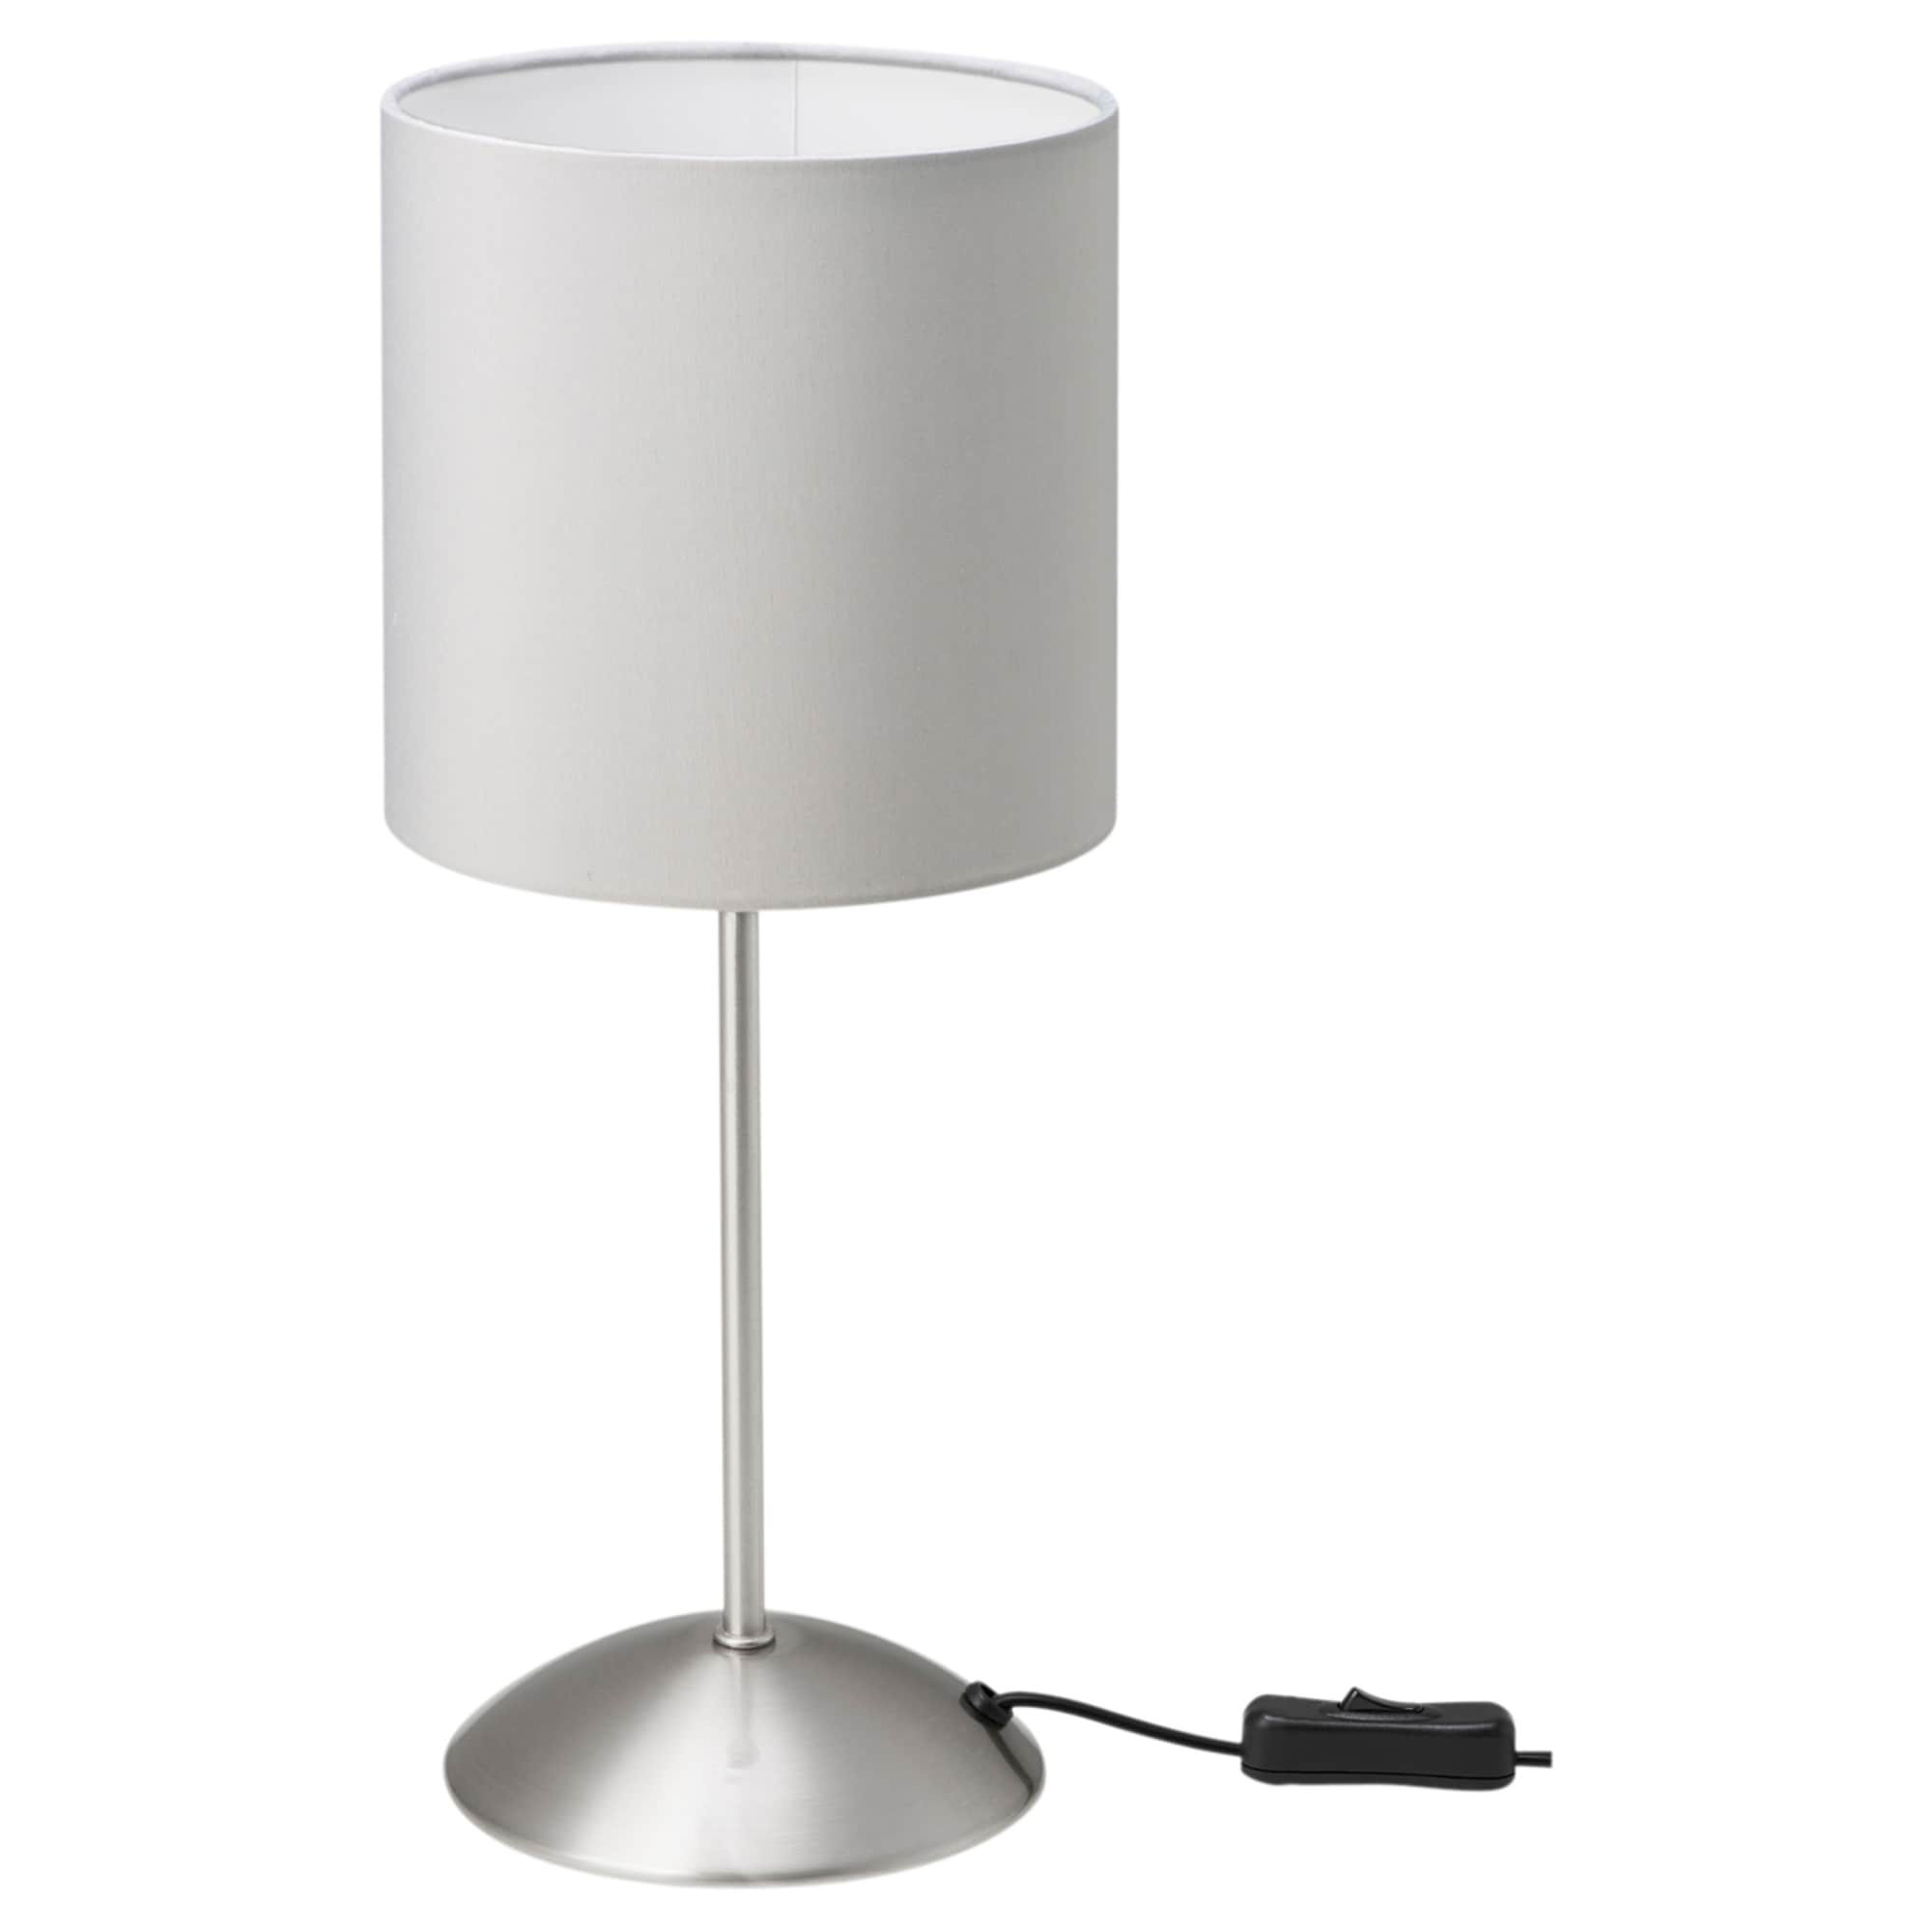 Best ideas about Desk Lamps Ikea . Save or Pin Table Lamps & Bedside Lamps Now.